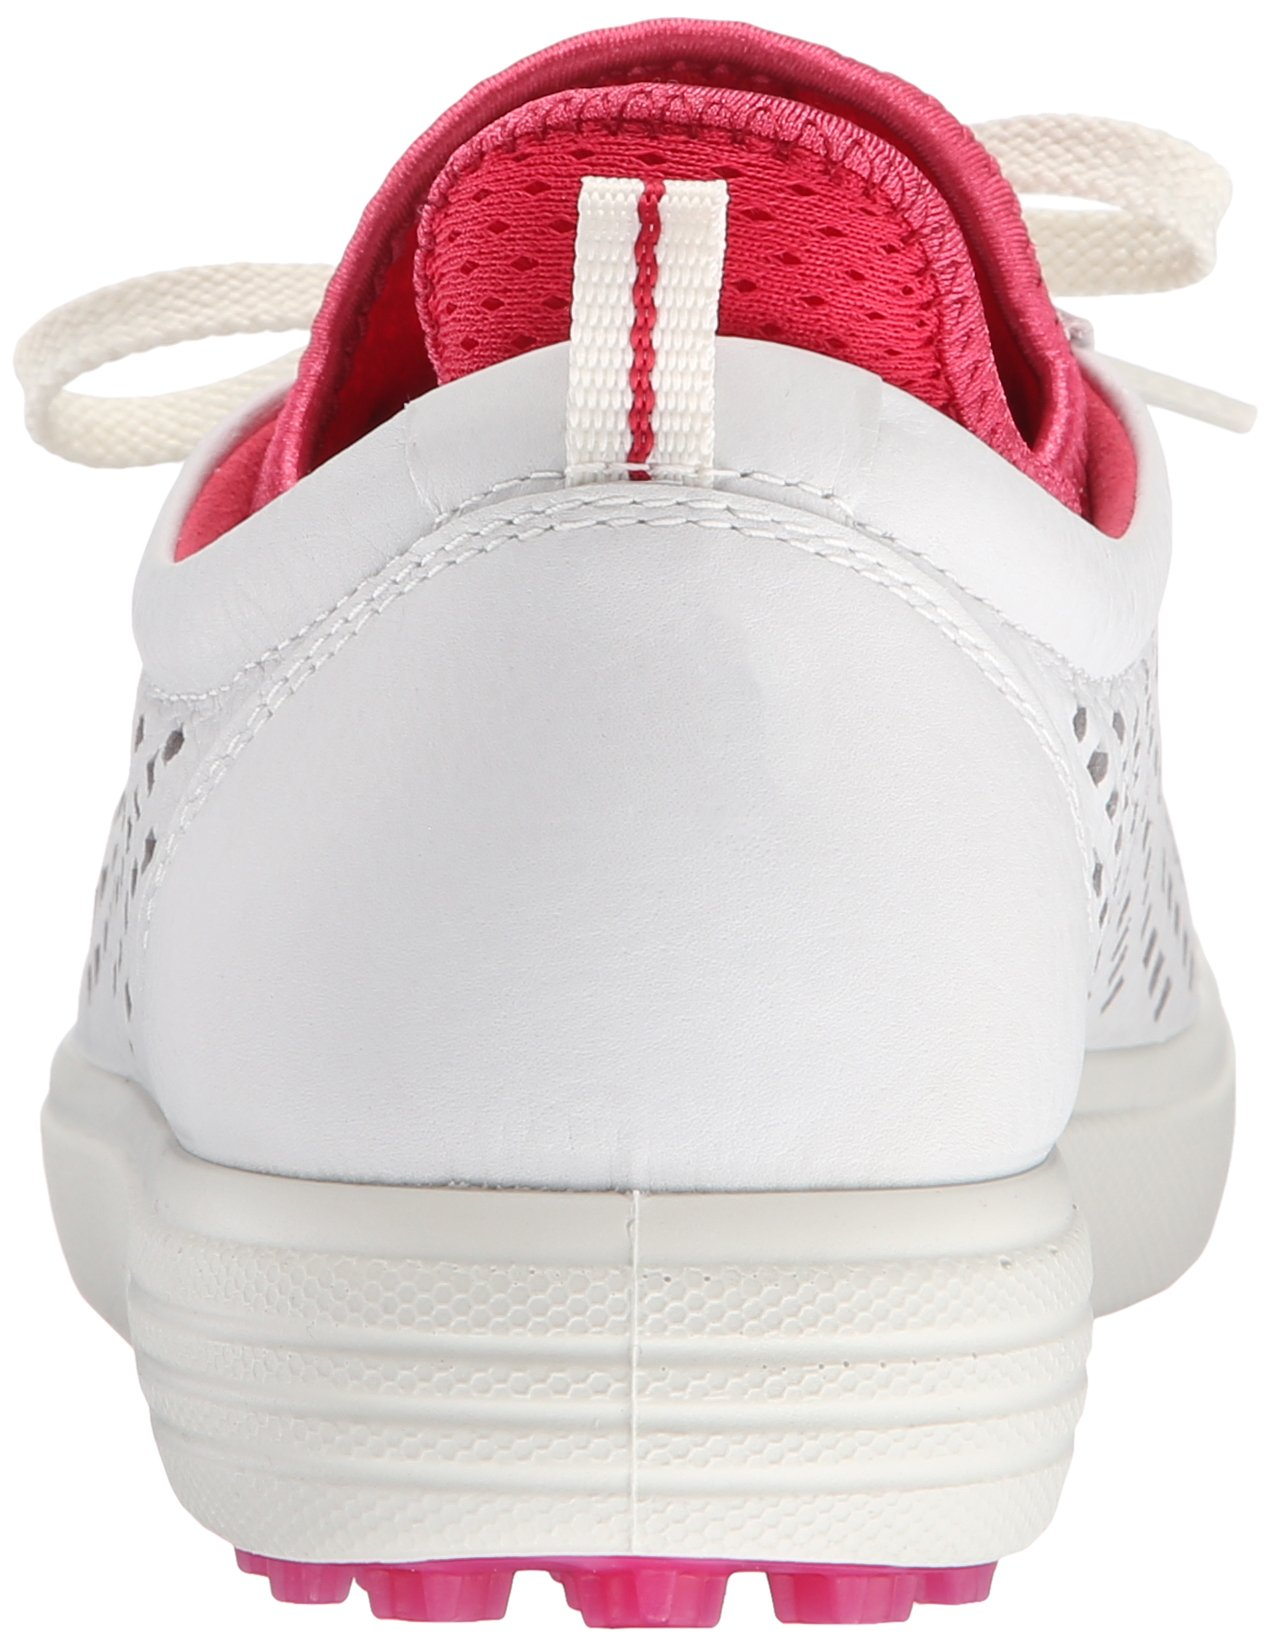 ECCO Women's Summer Hybrid Golf Shoe, White/Raspberry, 41 EU/10-10.5 M US by ECCO (Image #2)